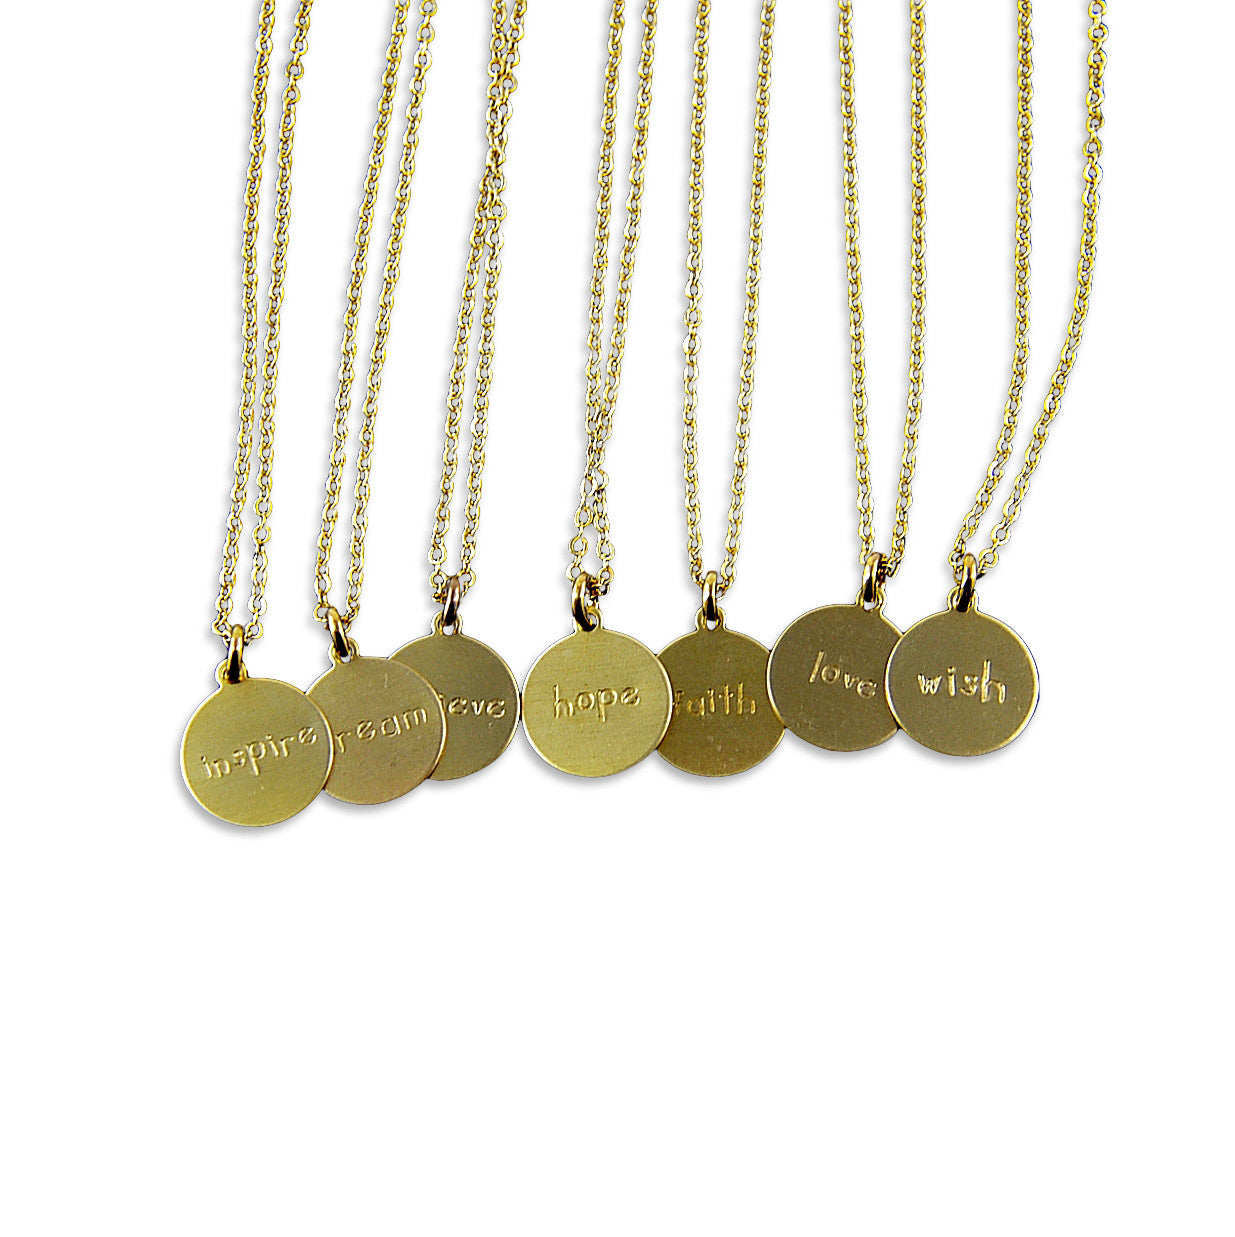 Inspirational Word Necklace - Dream, Wish, Faith, Believe, Inspire, Imagine, Love, Hope - Gwen Delicious Jewelry Designs